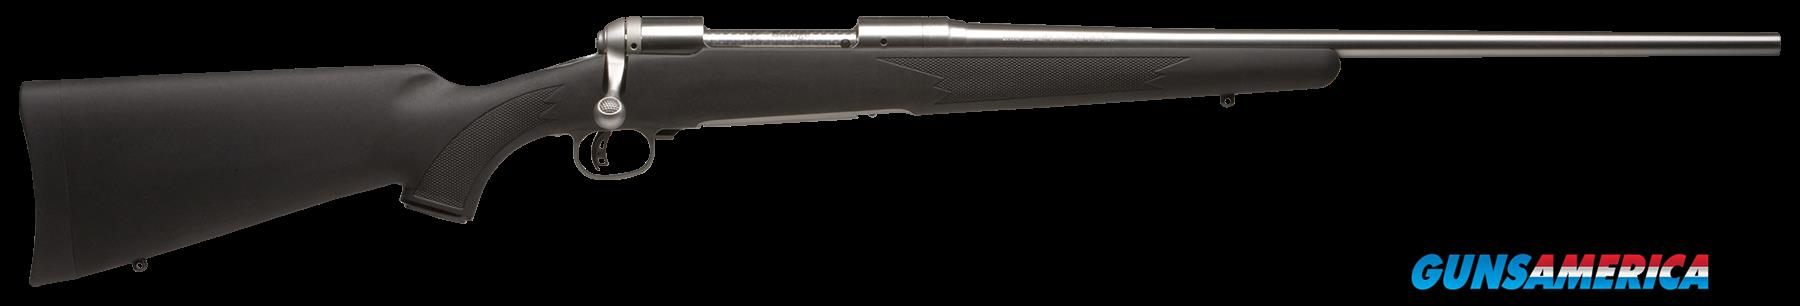 "Savage 22453 16/116 FCSS Bolt 338 Federal 22"" 2+1 Synthetic Black Stk Stainless Steel  Guns > Rifles > S Misc Rifles"